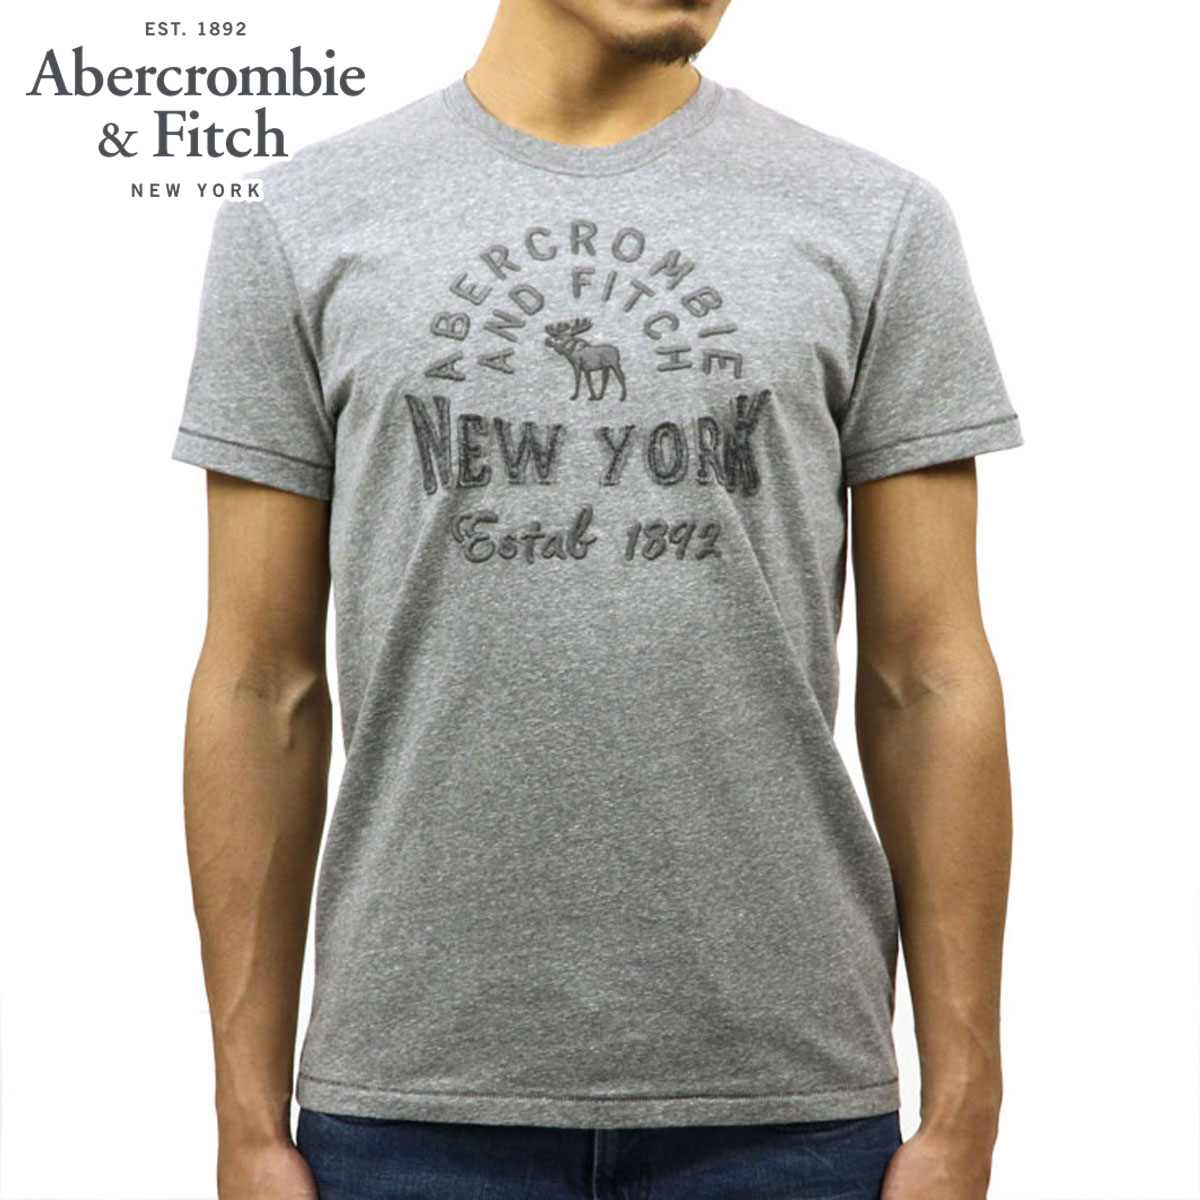 17af8c90 ABBA black Abercrombie & Fitch regular article men short sleeves T-shirt  LOGO CREW ...